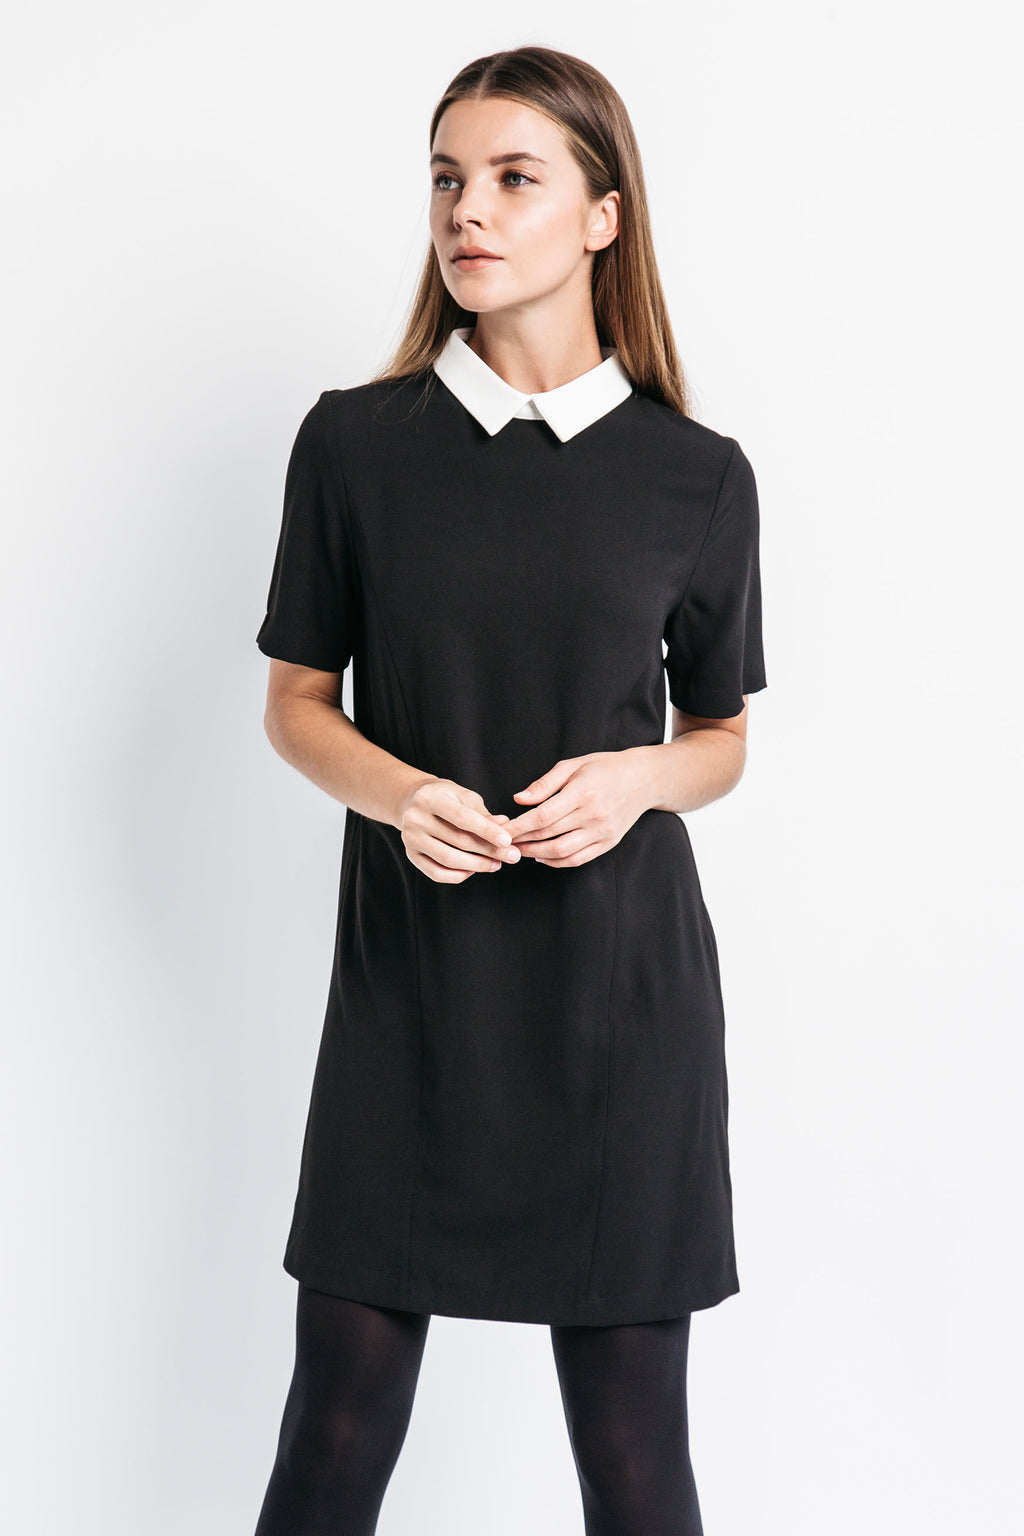 black collared dress